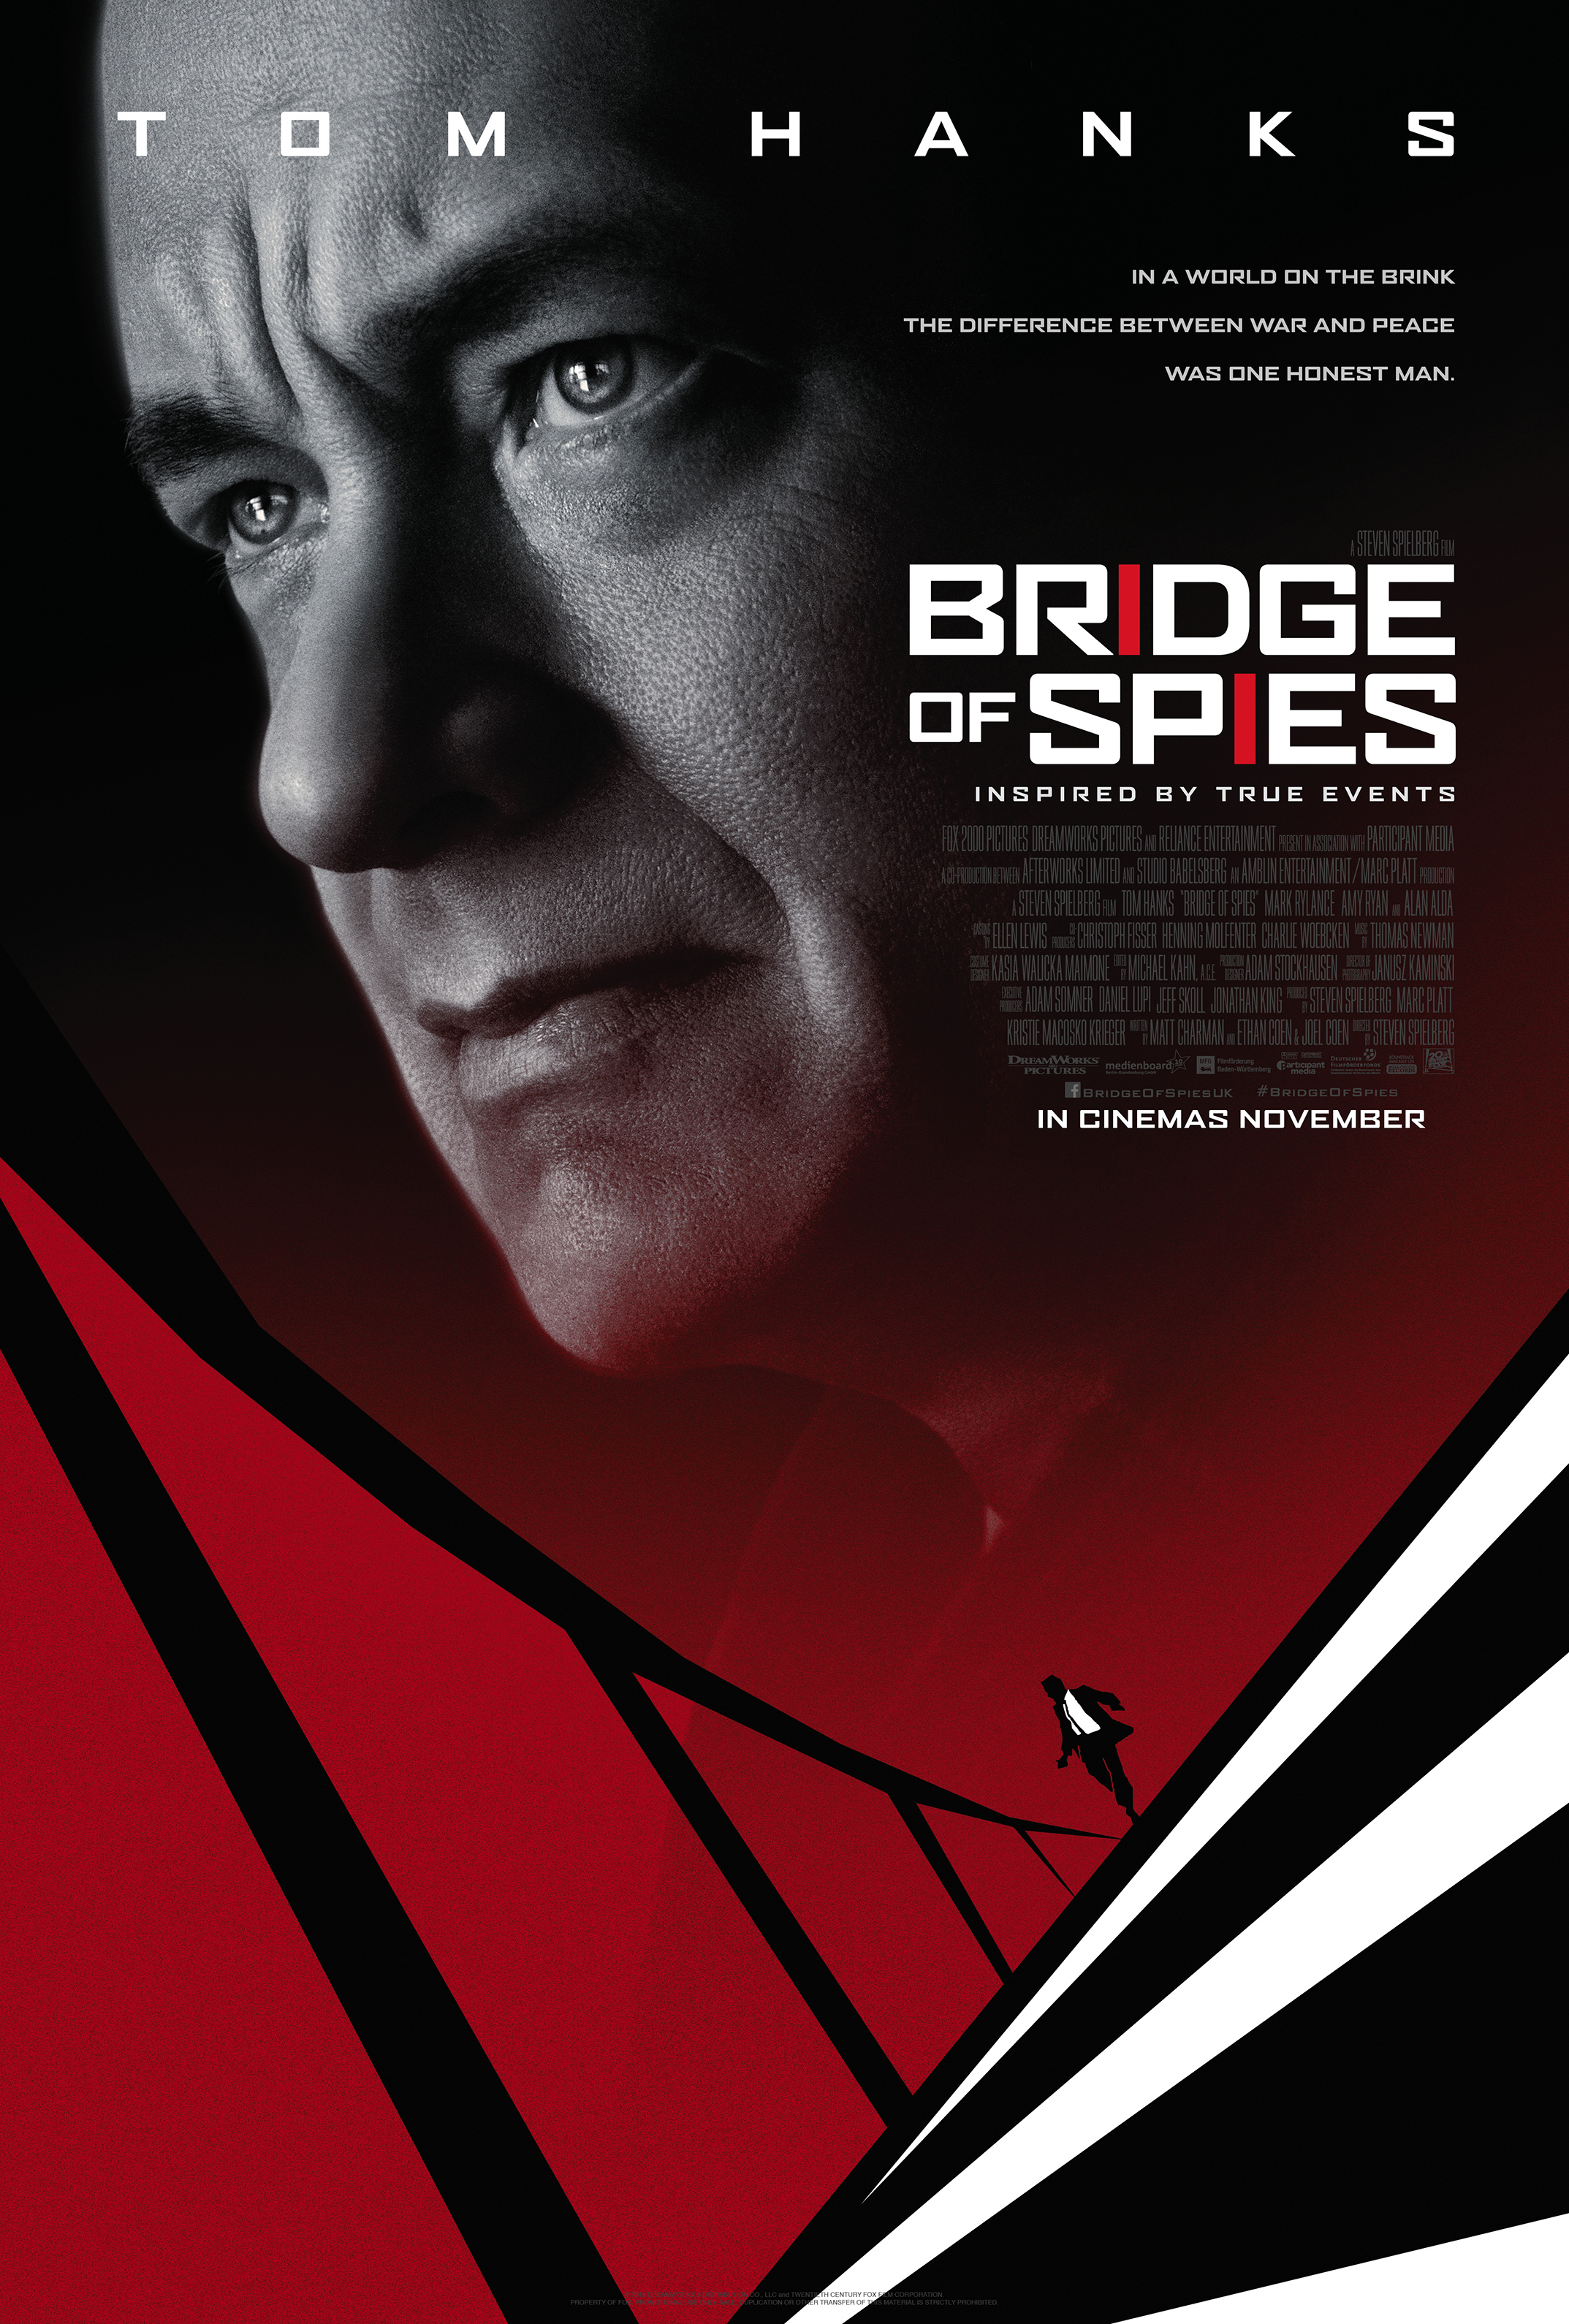 Bridge Of Spies Movie Trailer and Videos   TV Guide